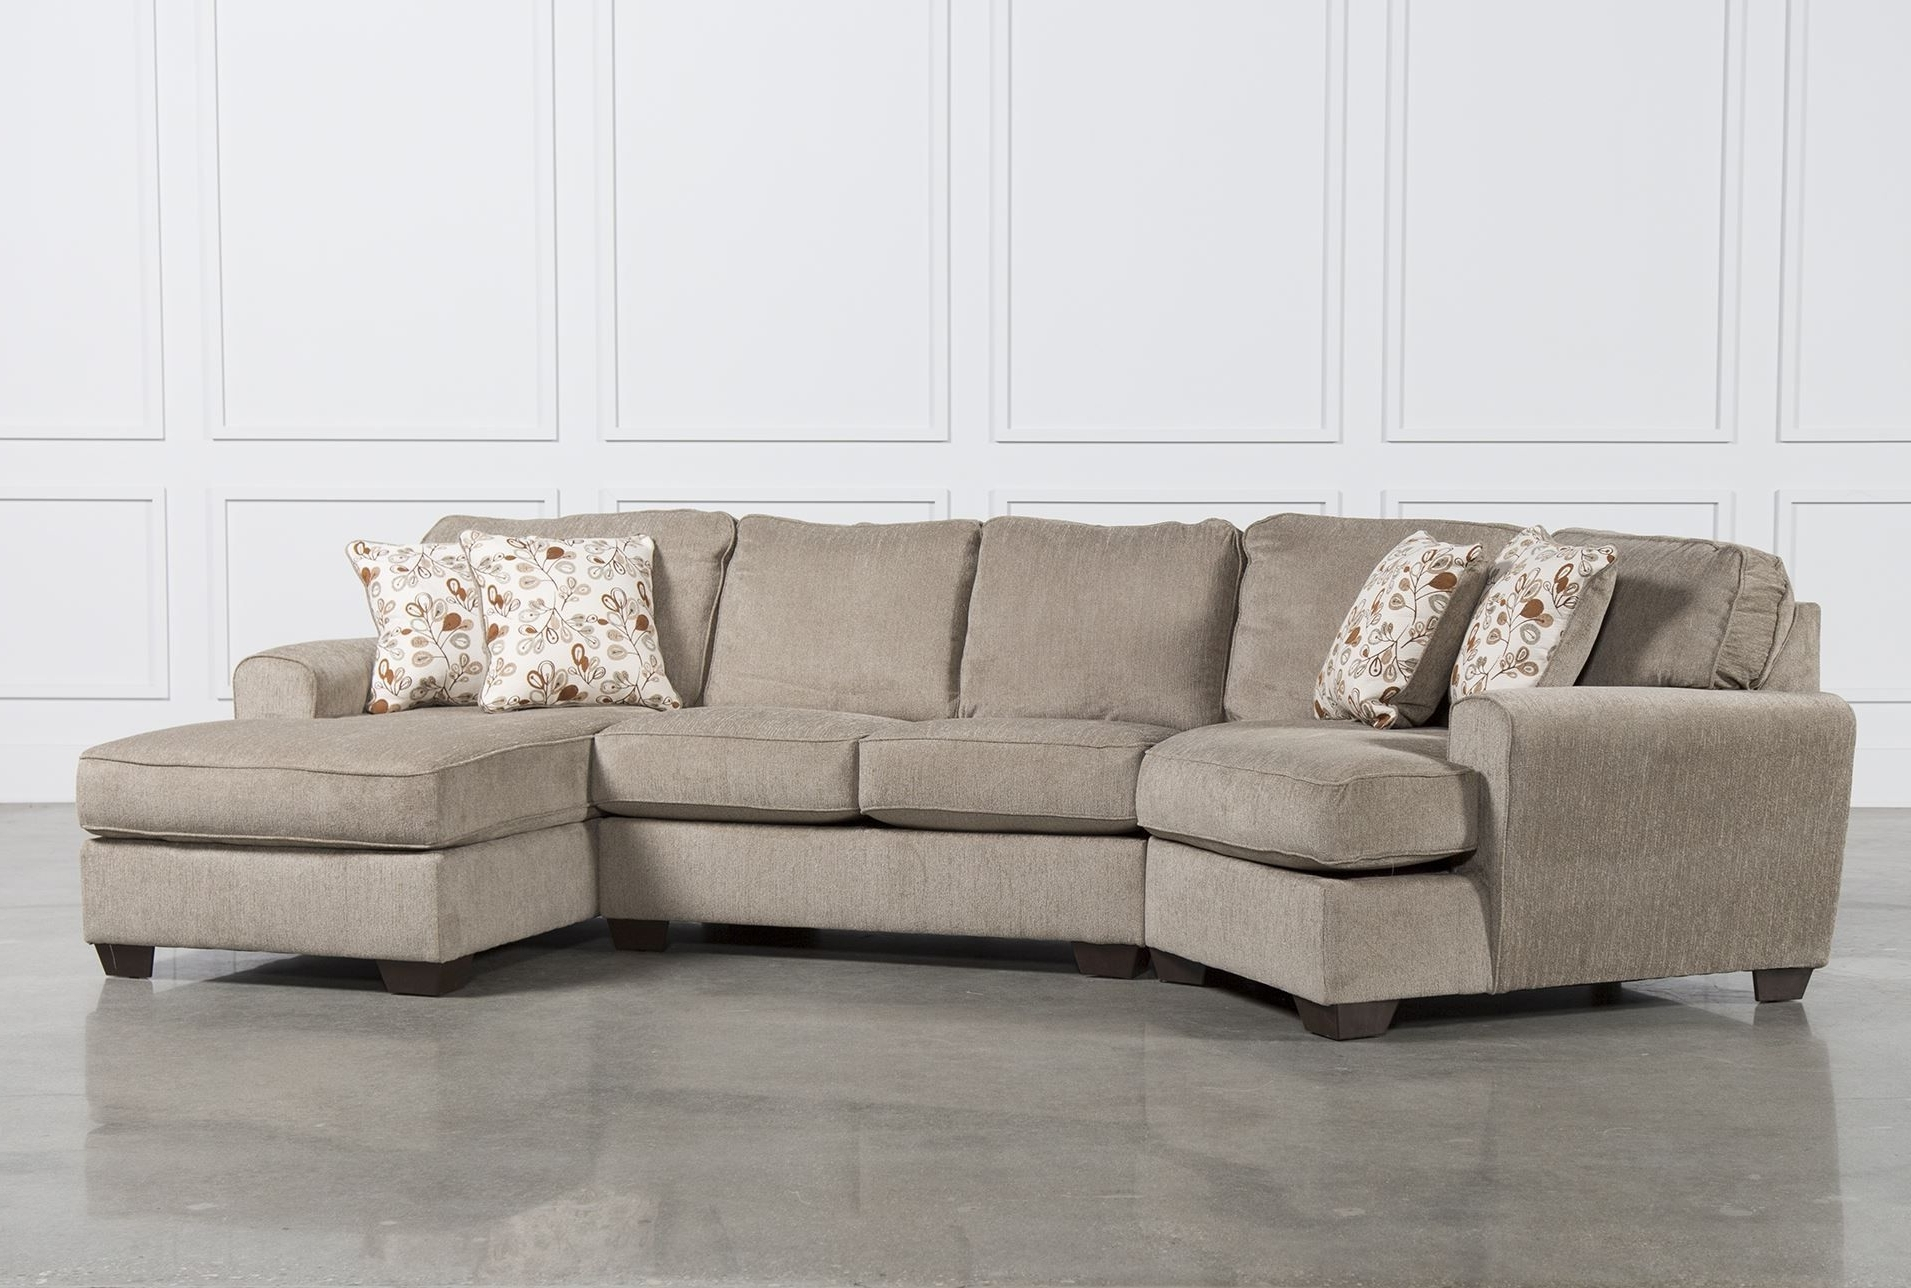 Cuddler Sectional Sofas Pertaining To Fashionable Patola Park 3 Piece Cuddler Sectional W/raf Corner Chaise (View 6 of 20)